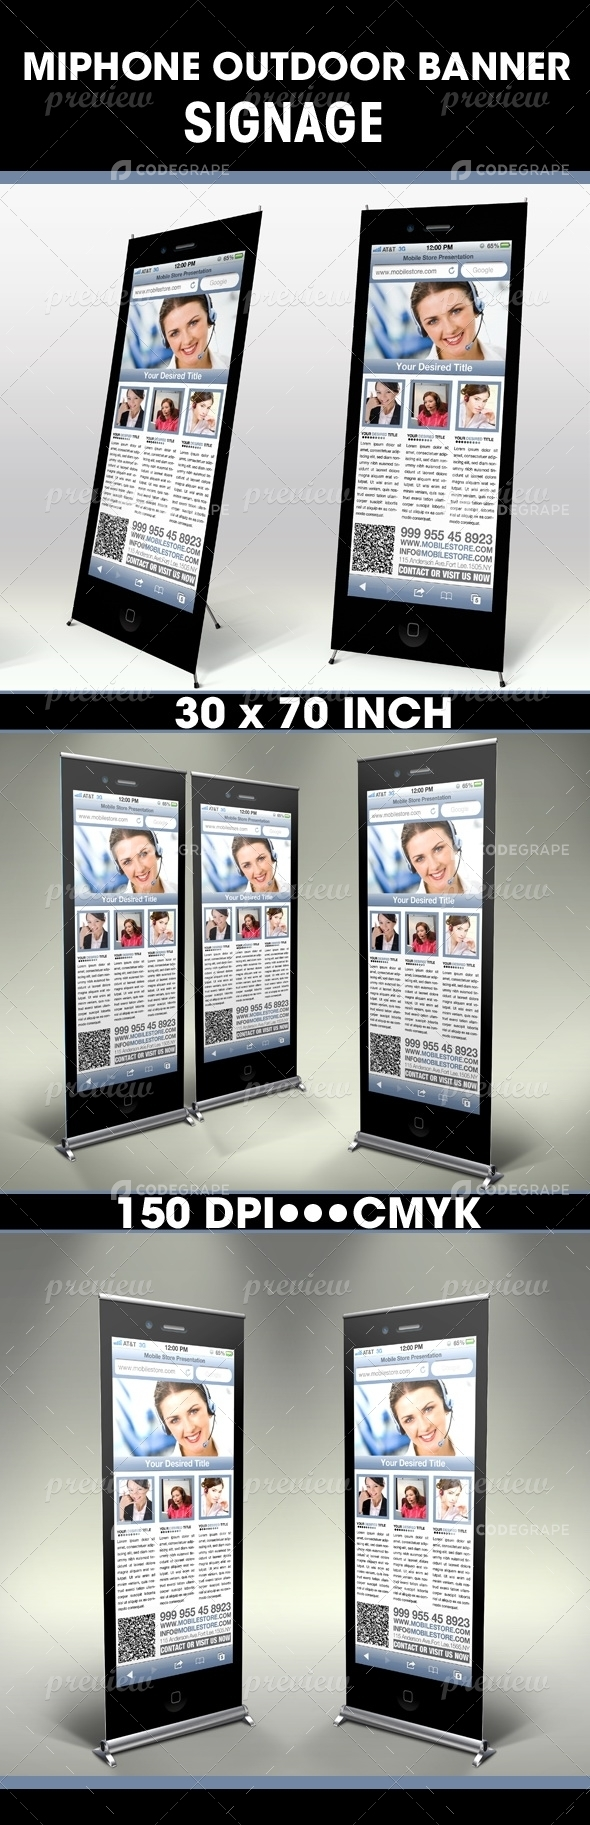 MiPhone Outdoor Banner Signage